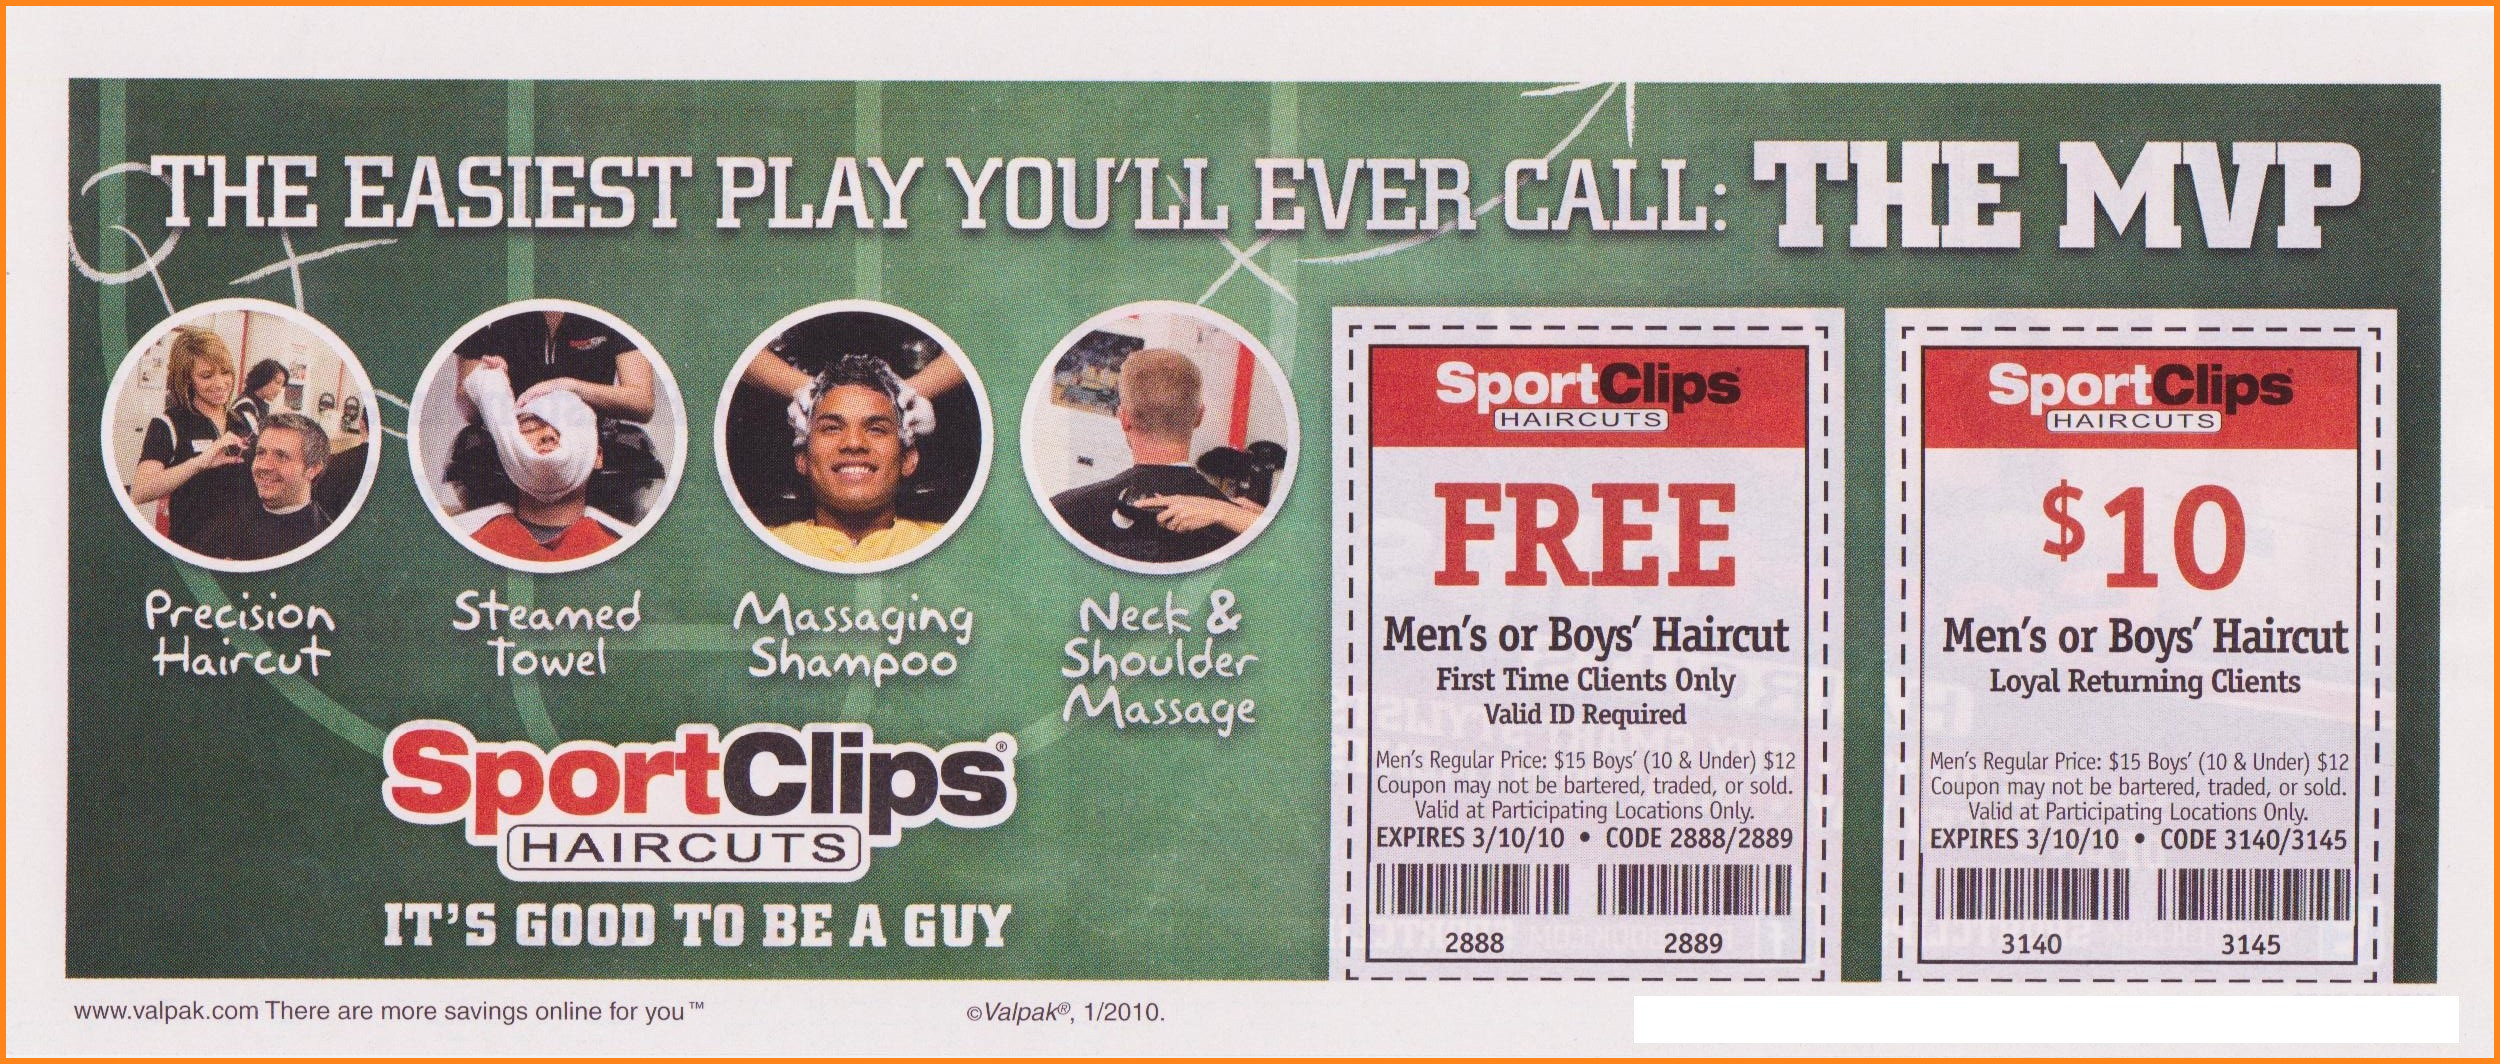 Beautiful Mens Haircut Coupons Image Of Haircuts Tutorials 254996 - Sports Clips Free Haircut Printable Coupon